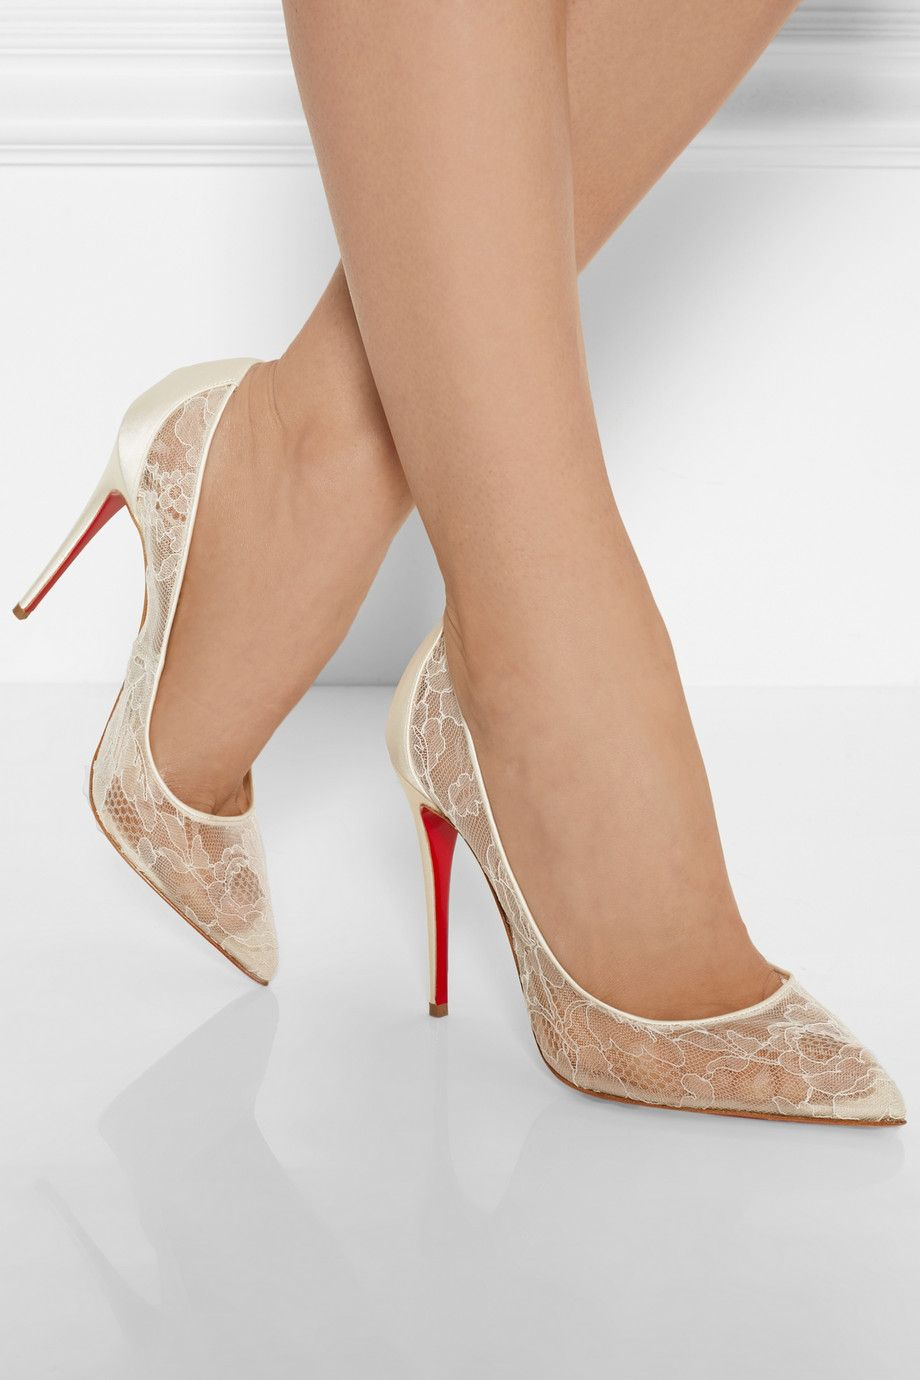 christian louboutin follies 100mm lace pumps